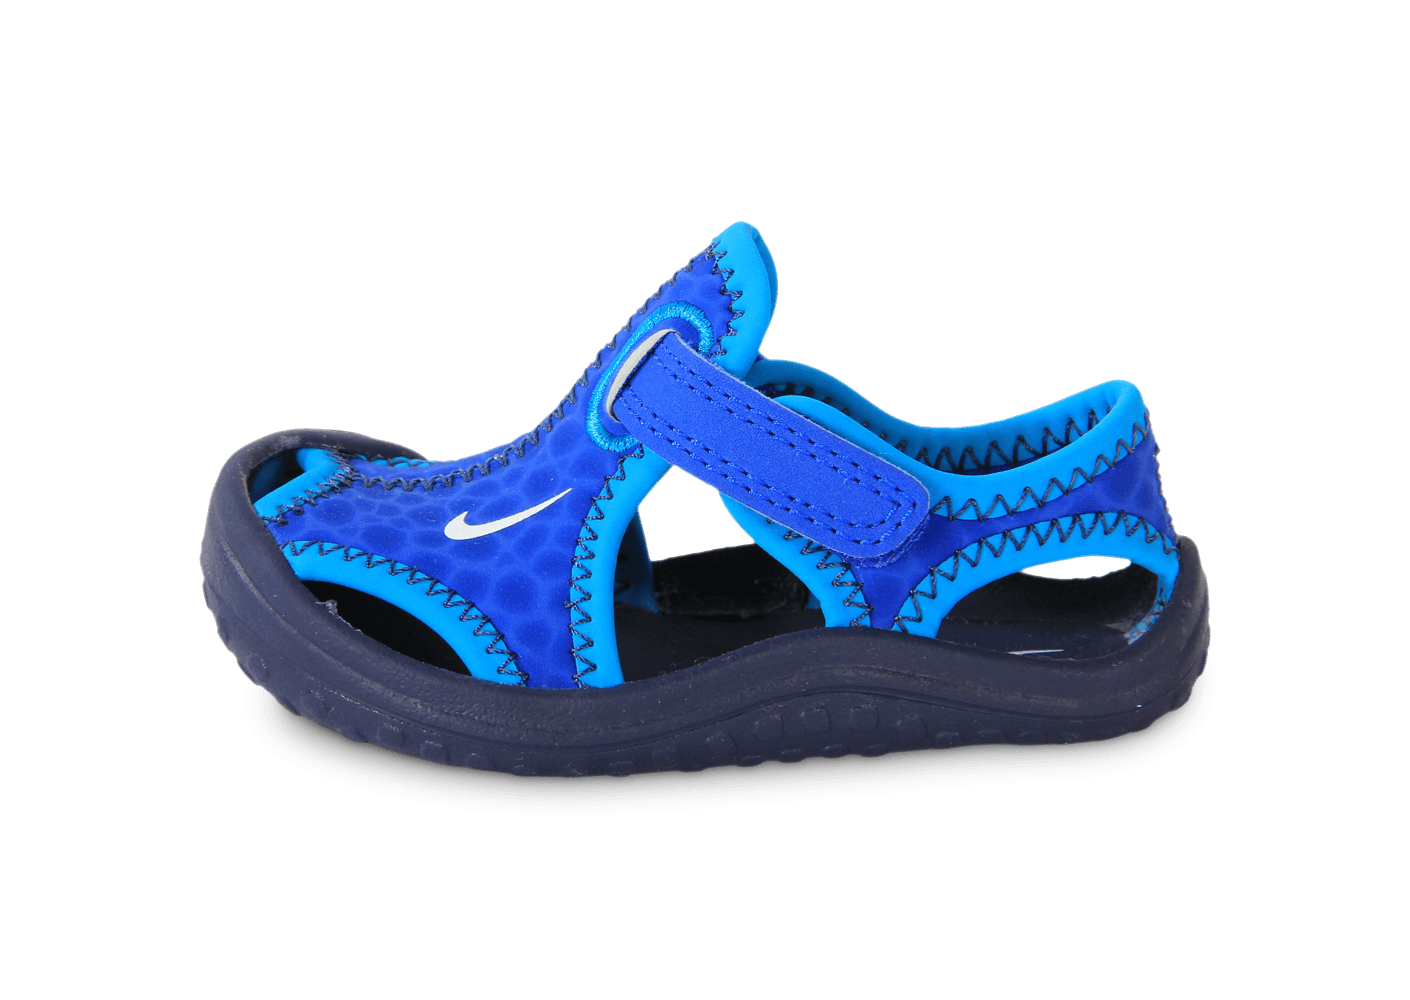 best sneakers a4559 e3354 Nike Sunray Protect Bébé Bleue - Chaussures Chaussures - Chausport